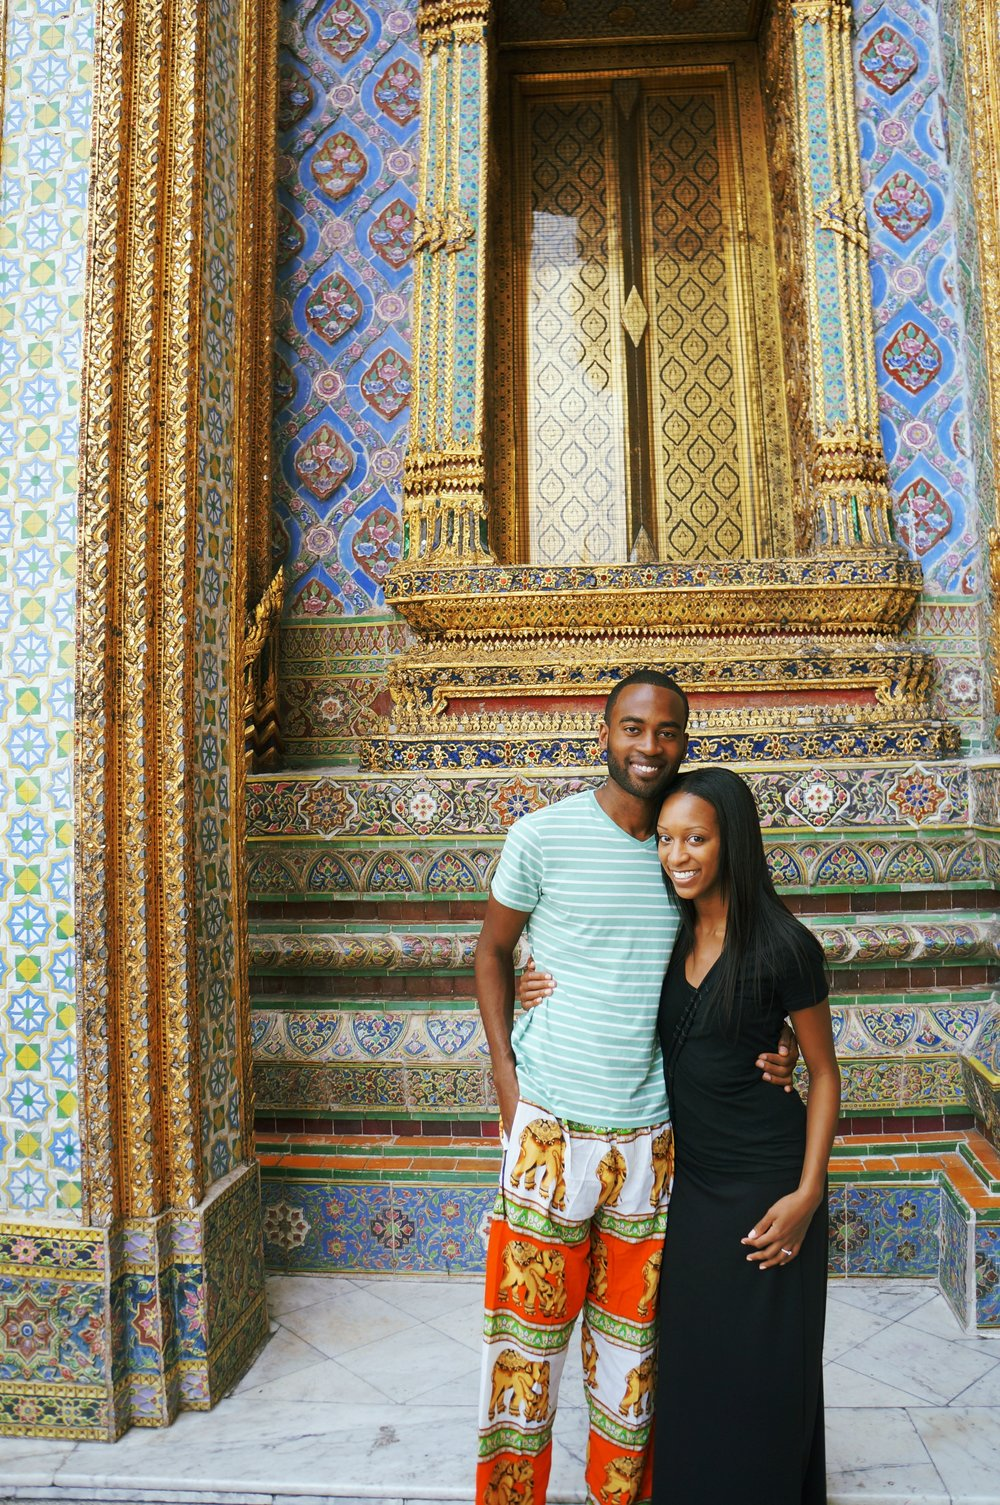 THROWBACK TO OUR FIRST INTERNATIONAL TRIP TOGETHER: THAILAND! MARQUETTE HAD TO WEAR THOSE SILLY LOANER PANTS BECAUSE HE WAS WEARING SHORTS WHICH WERE NOT ALLOWED IN THE TEMPLE. AND I HAD REALLY THIN EYEBROWS. THIS PHOTO WAS TAKEN TWO DAYS AFTER WE GOT ENGAGED!